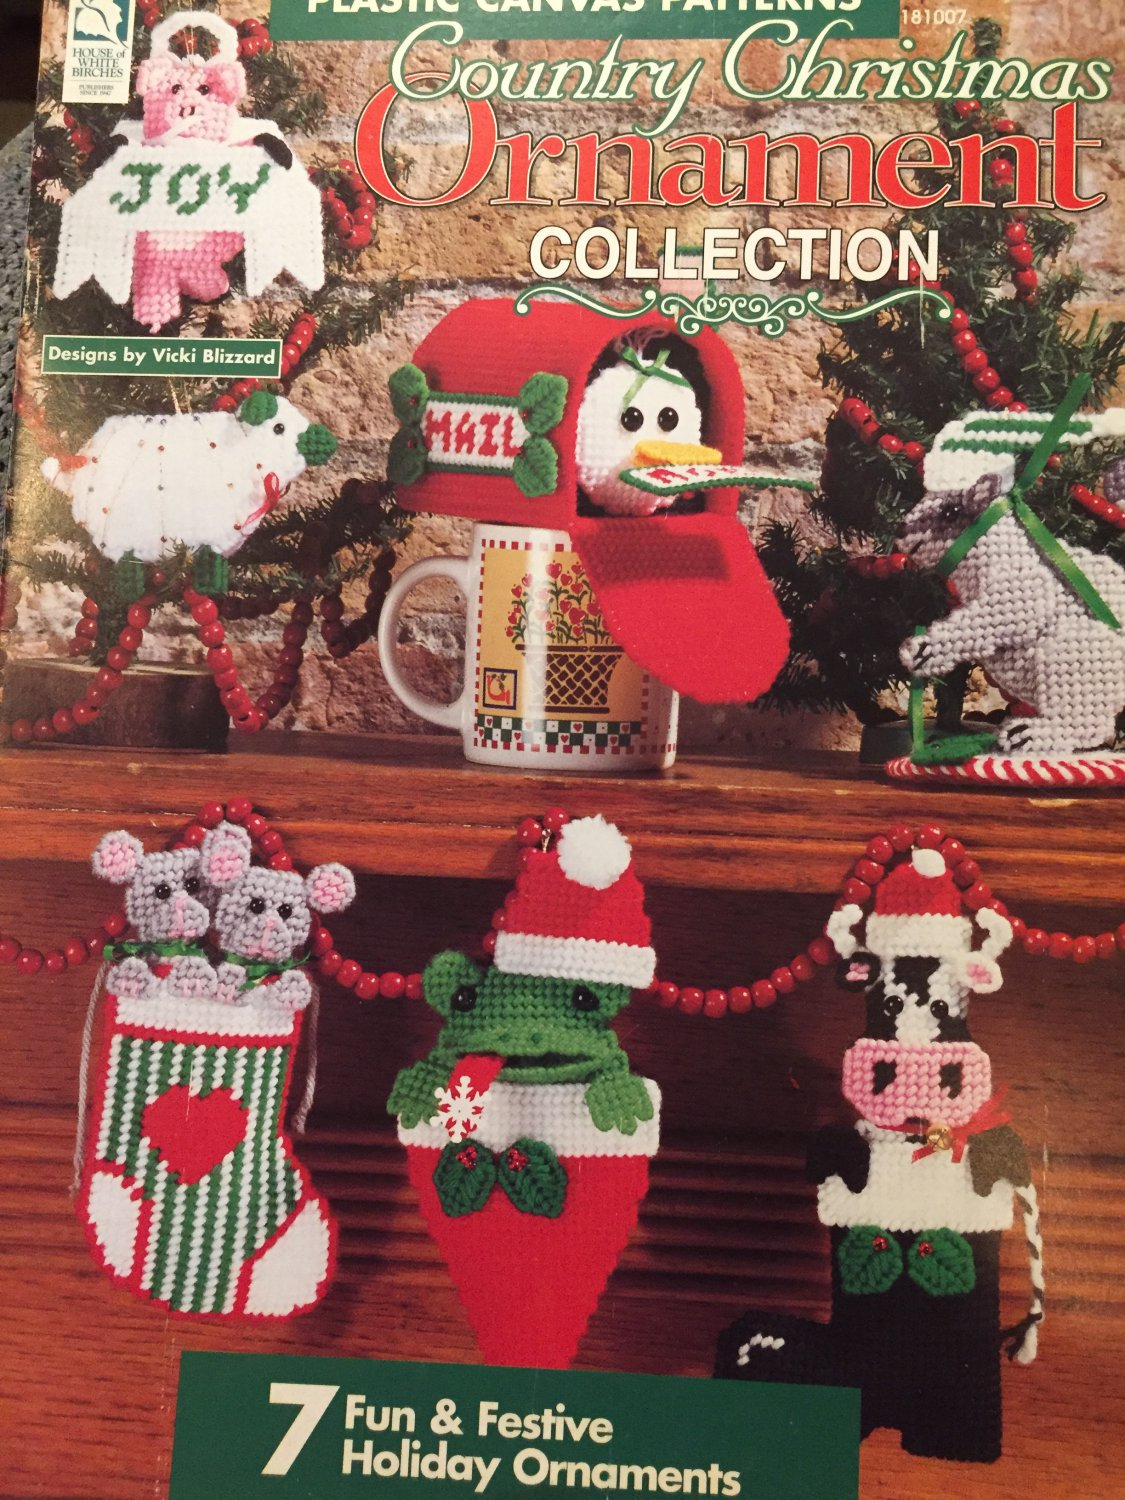 House of White Birches Country Christmas Ornament Collection Plastic Canvas pattern